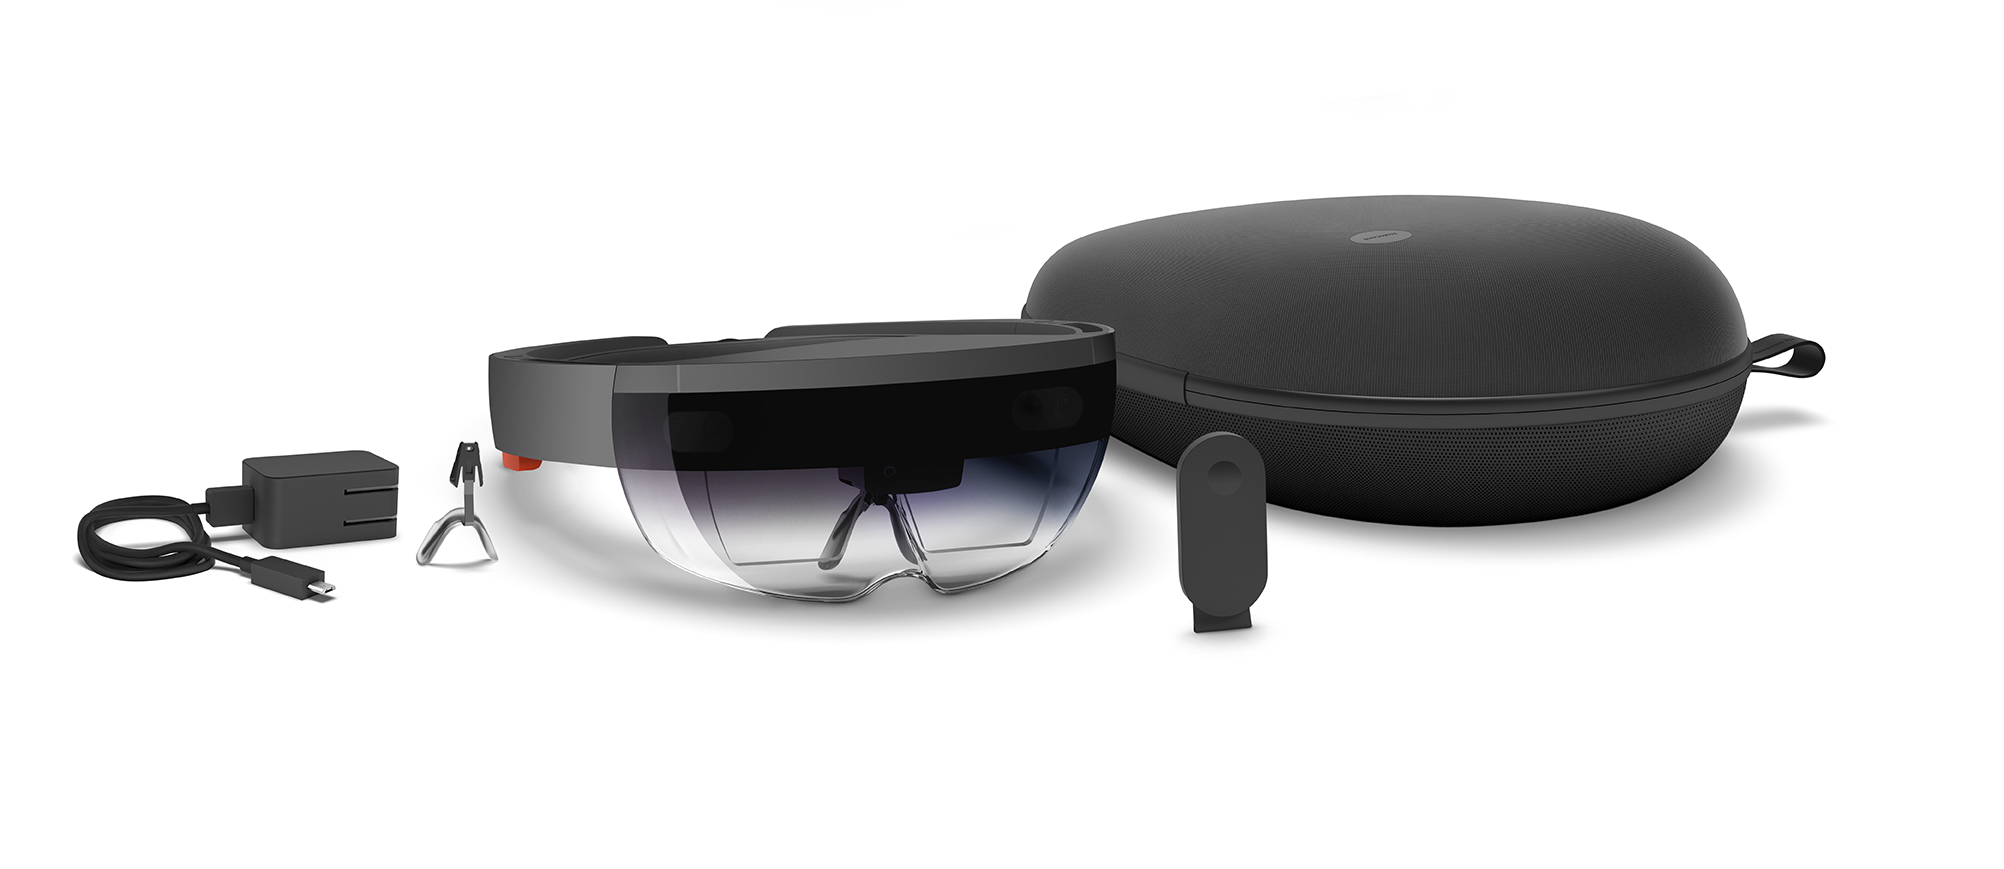 Microsoft is shipping its $3,000 HoloLens Development Edition on March 30 for businesses.